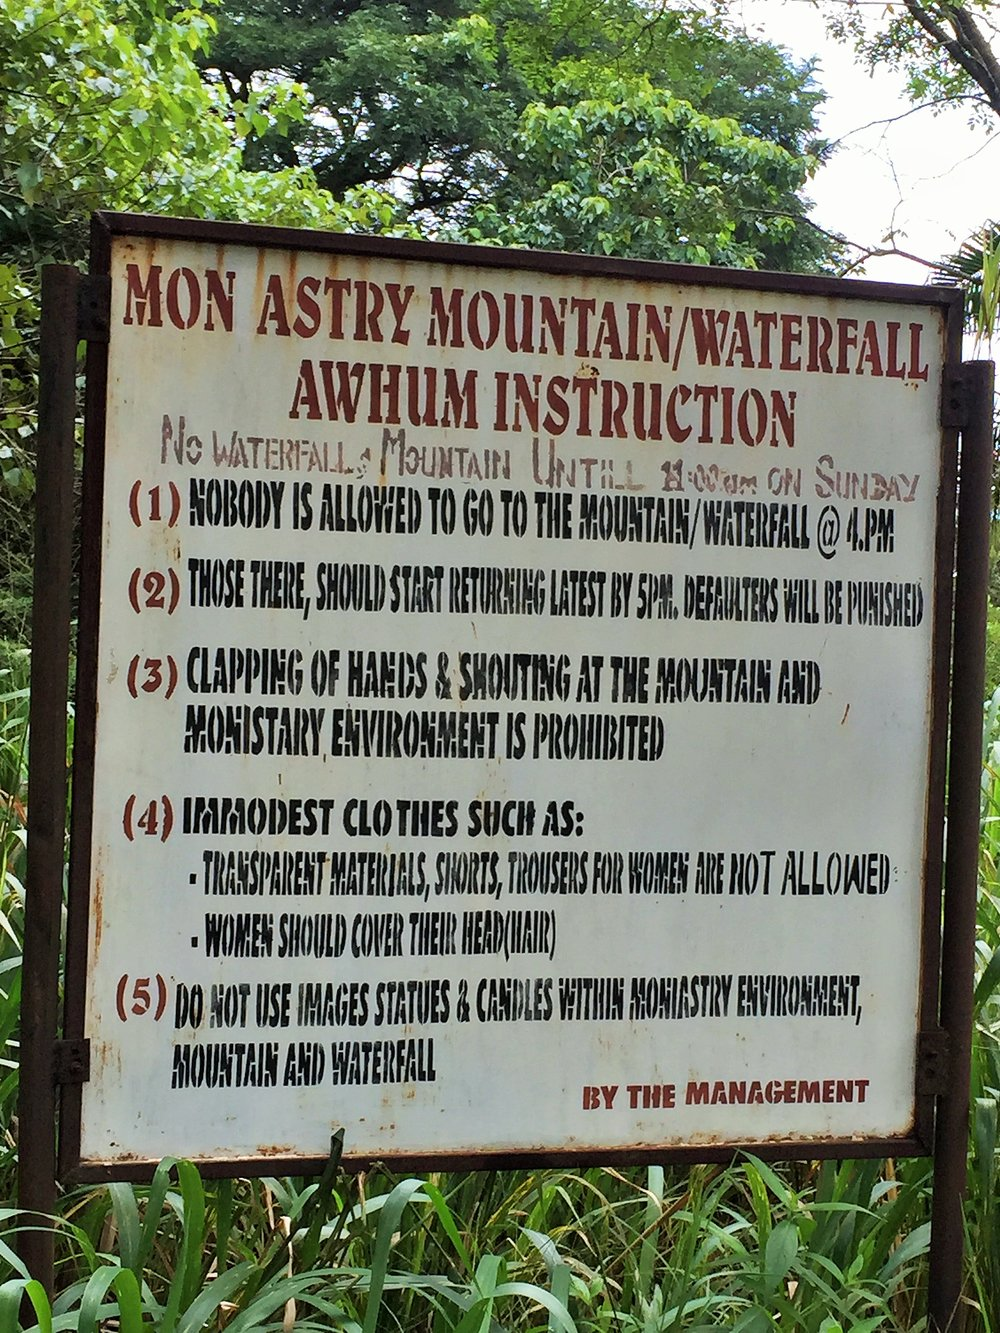 Awhum waterfalls and caves | The Ajala Bug